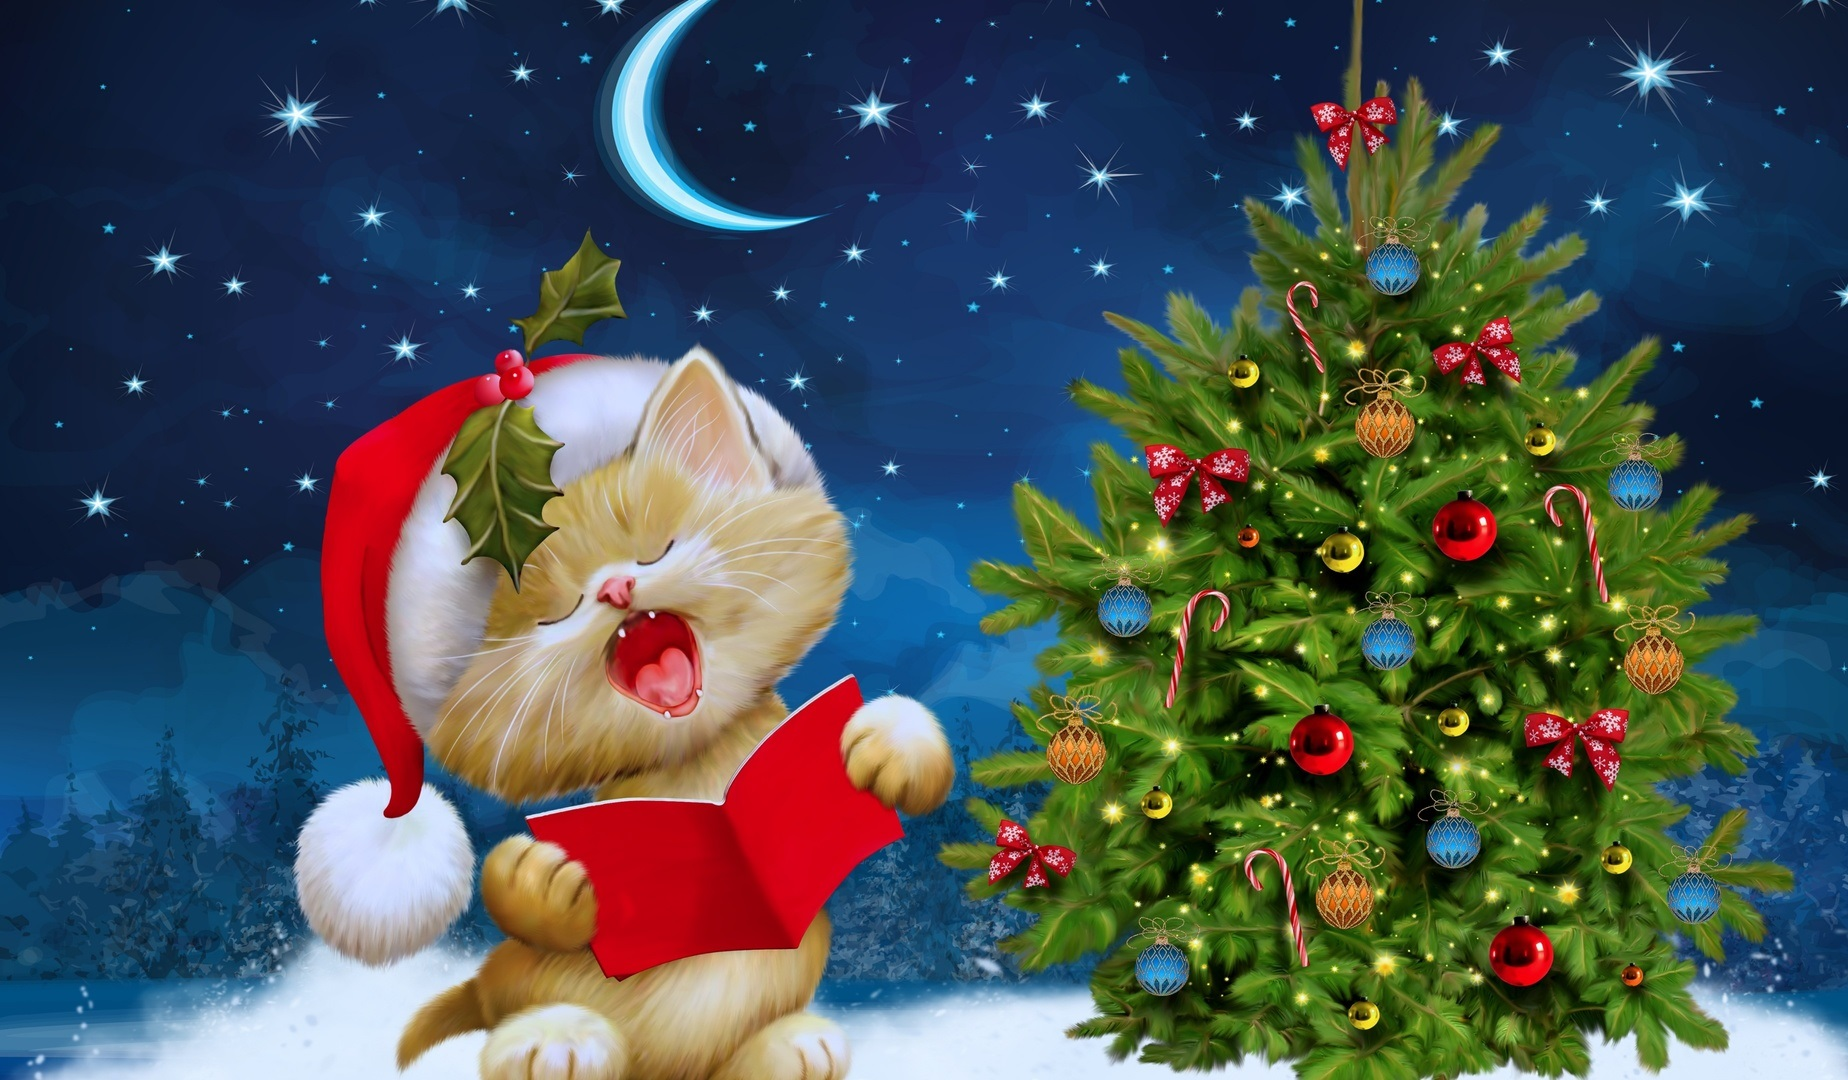 Merry Christmas Images Hd.Merry Christmas Hd Wallpapers Images 2016 Free Download